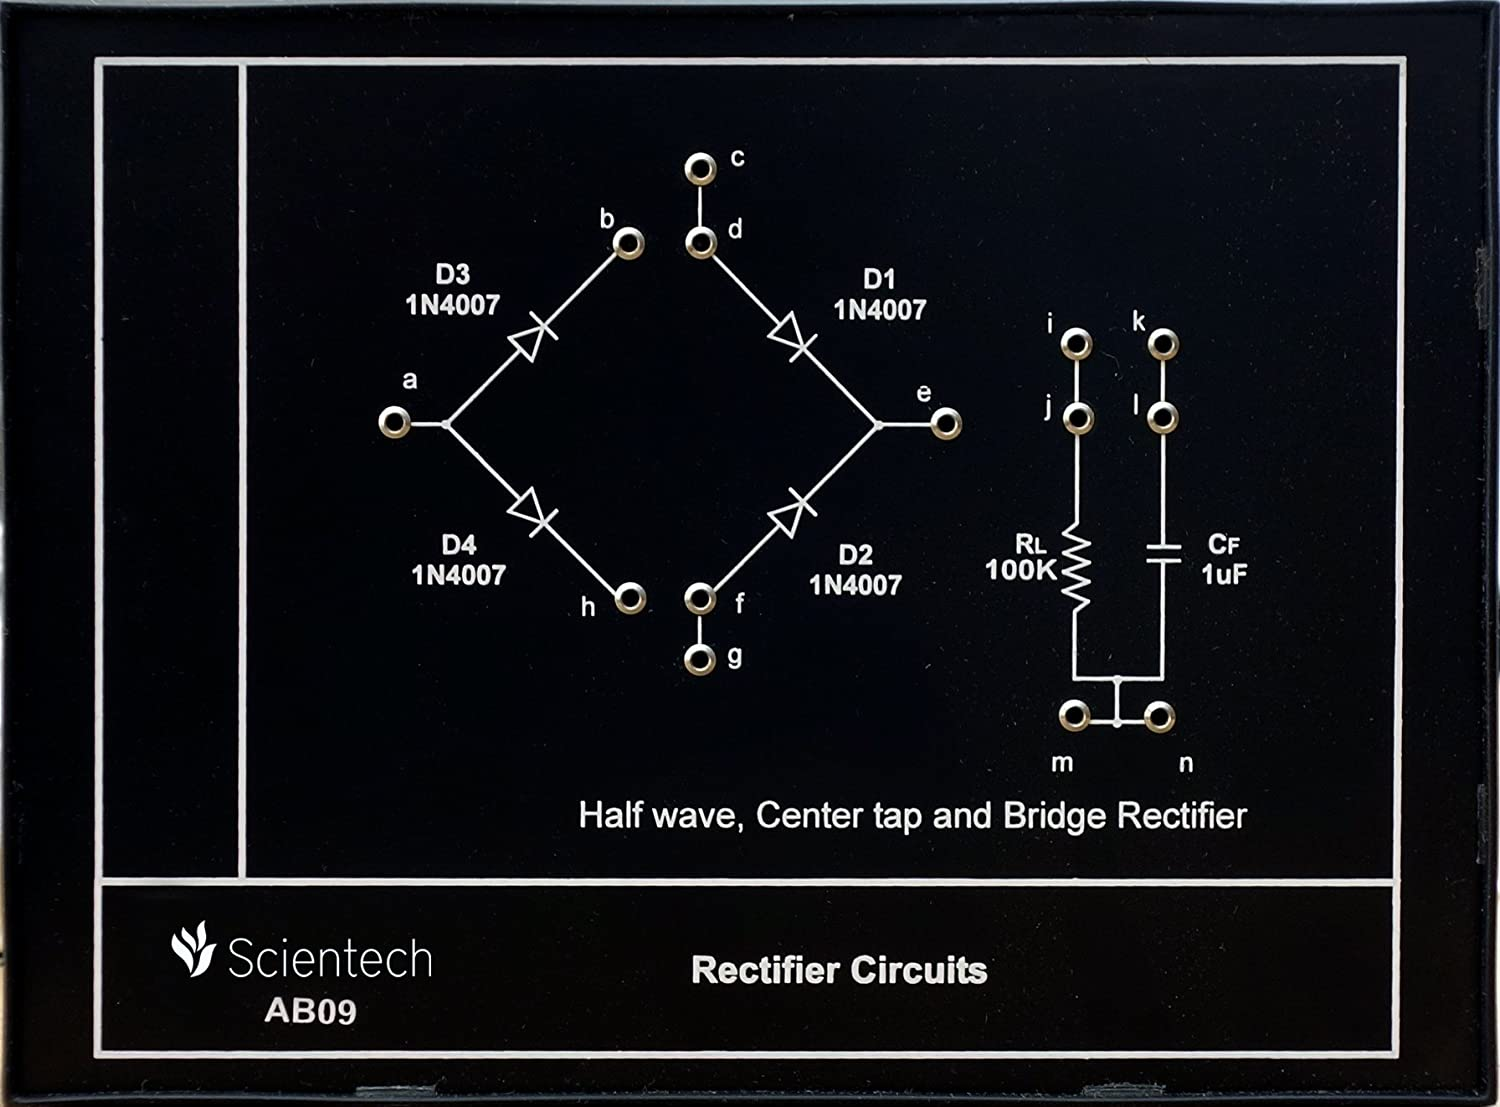 Ab09 Rectifier Circuits Experiment Board And Trainer Kit With 1 Full Wave Bridge Circuit Working Explanation Year Warranty Without Power Supply